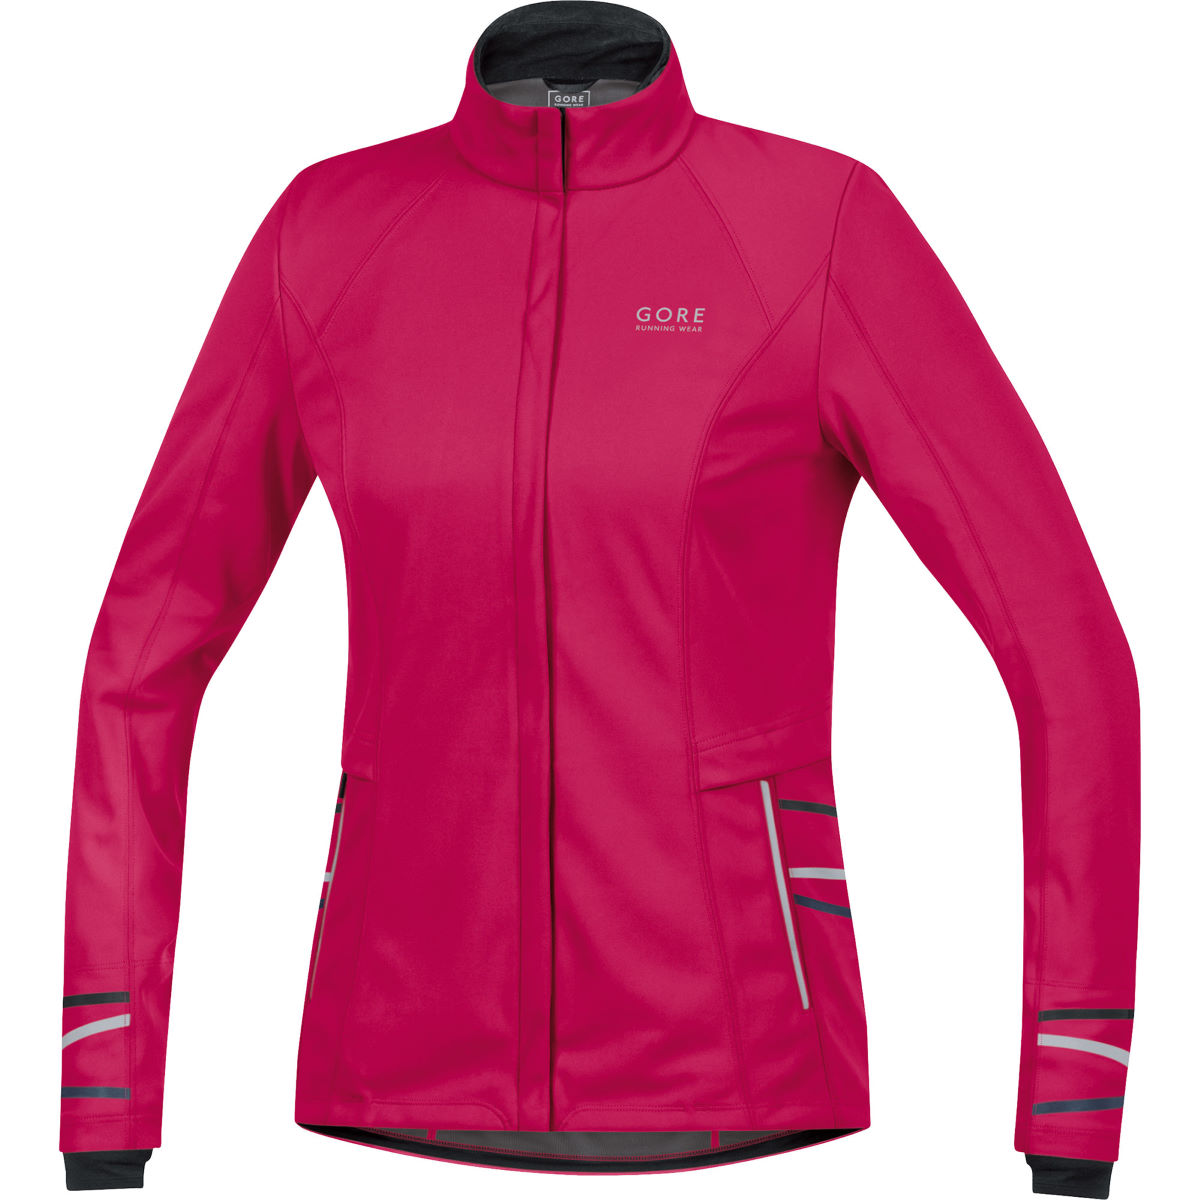 Veste Femme Gore Running Wear Mythos 2.0 Windstopper (AH15) - L Rose Vestes de running coupe-vent